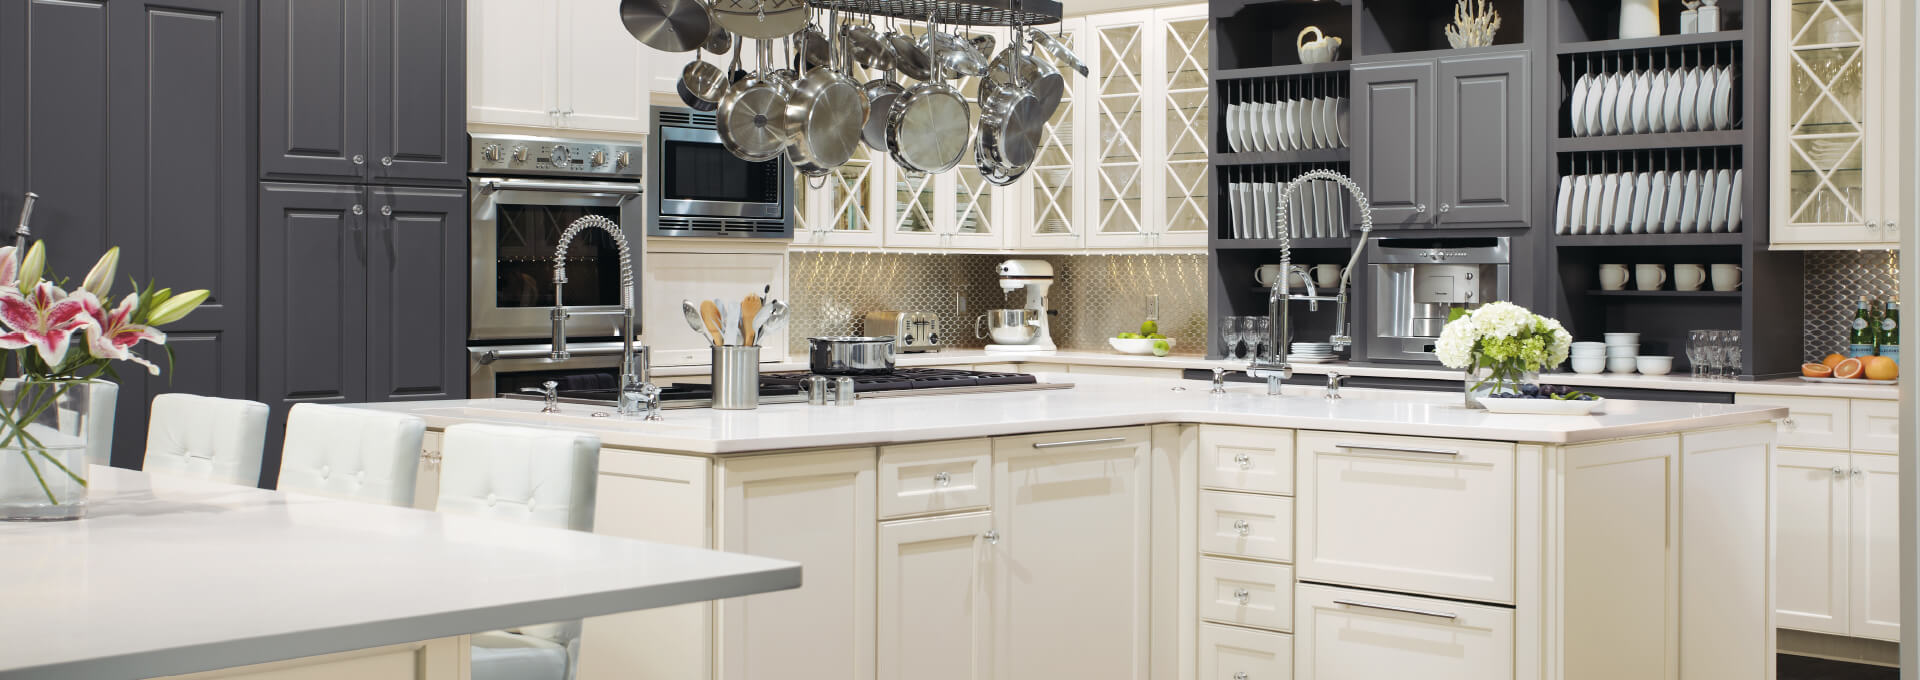 Etonnant Kitchen Express Two Toned Kitchen Cabinets